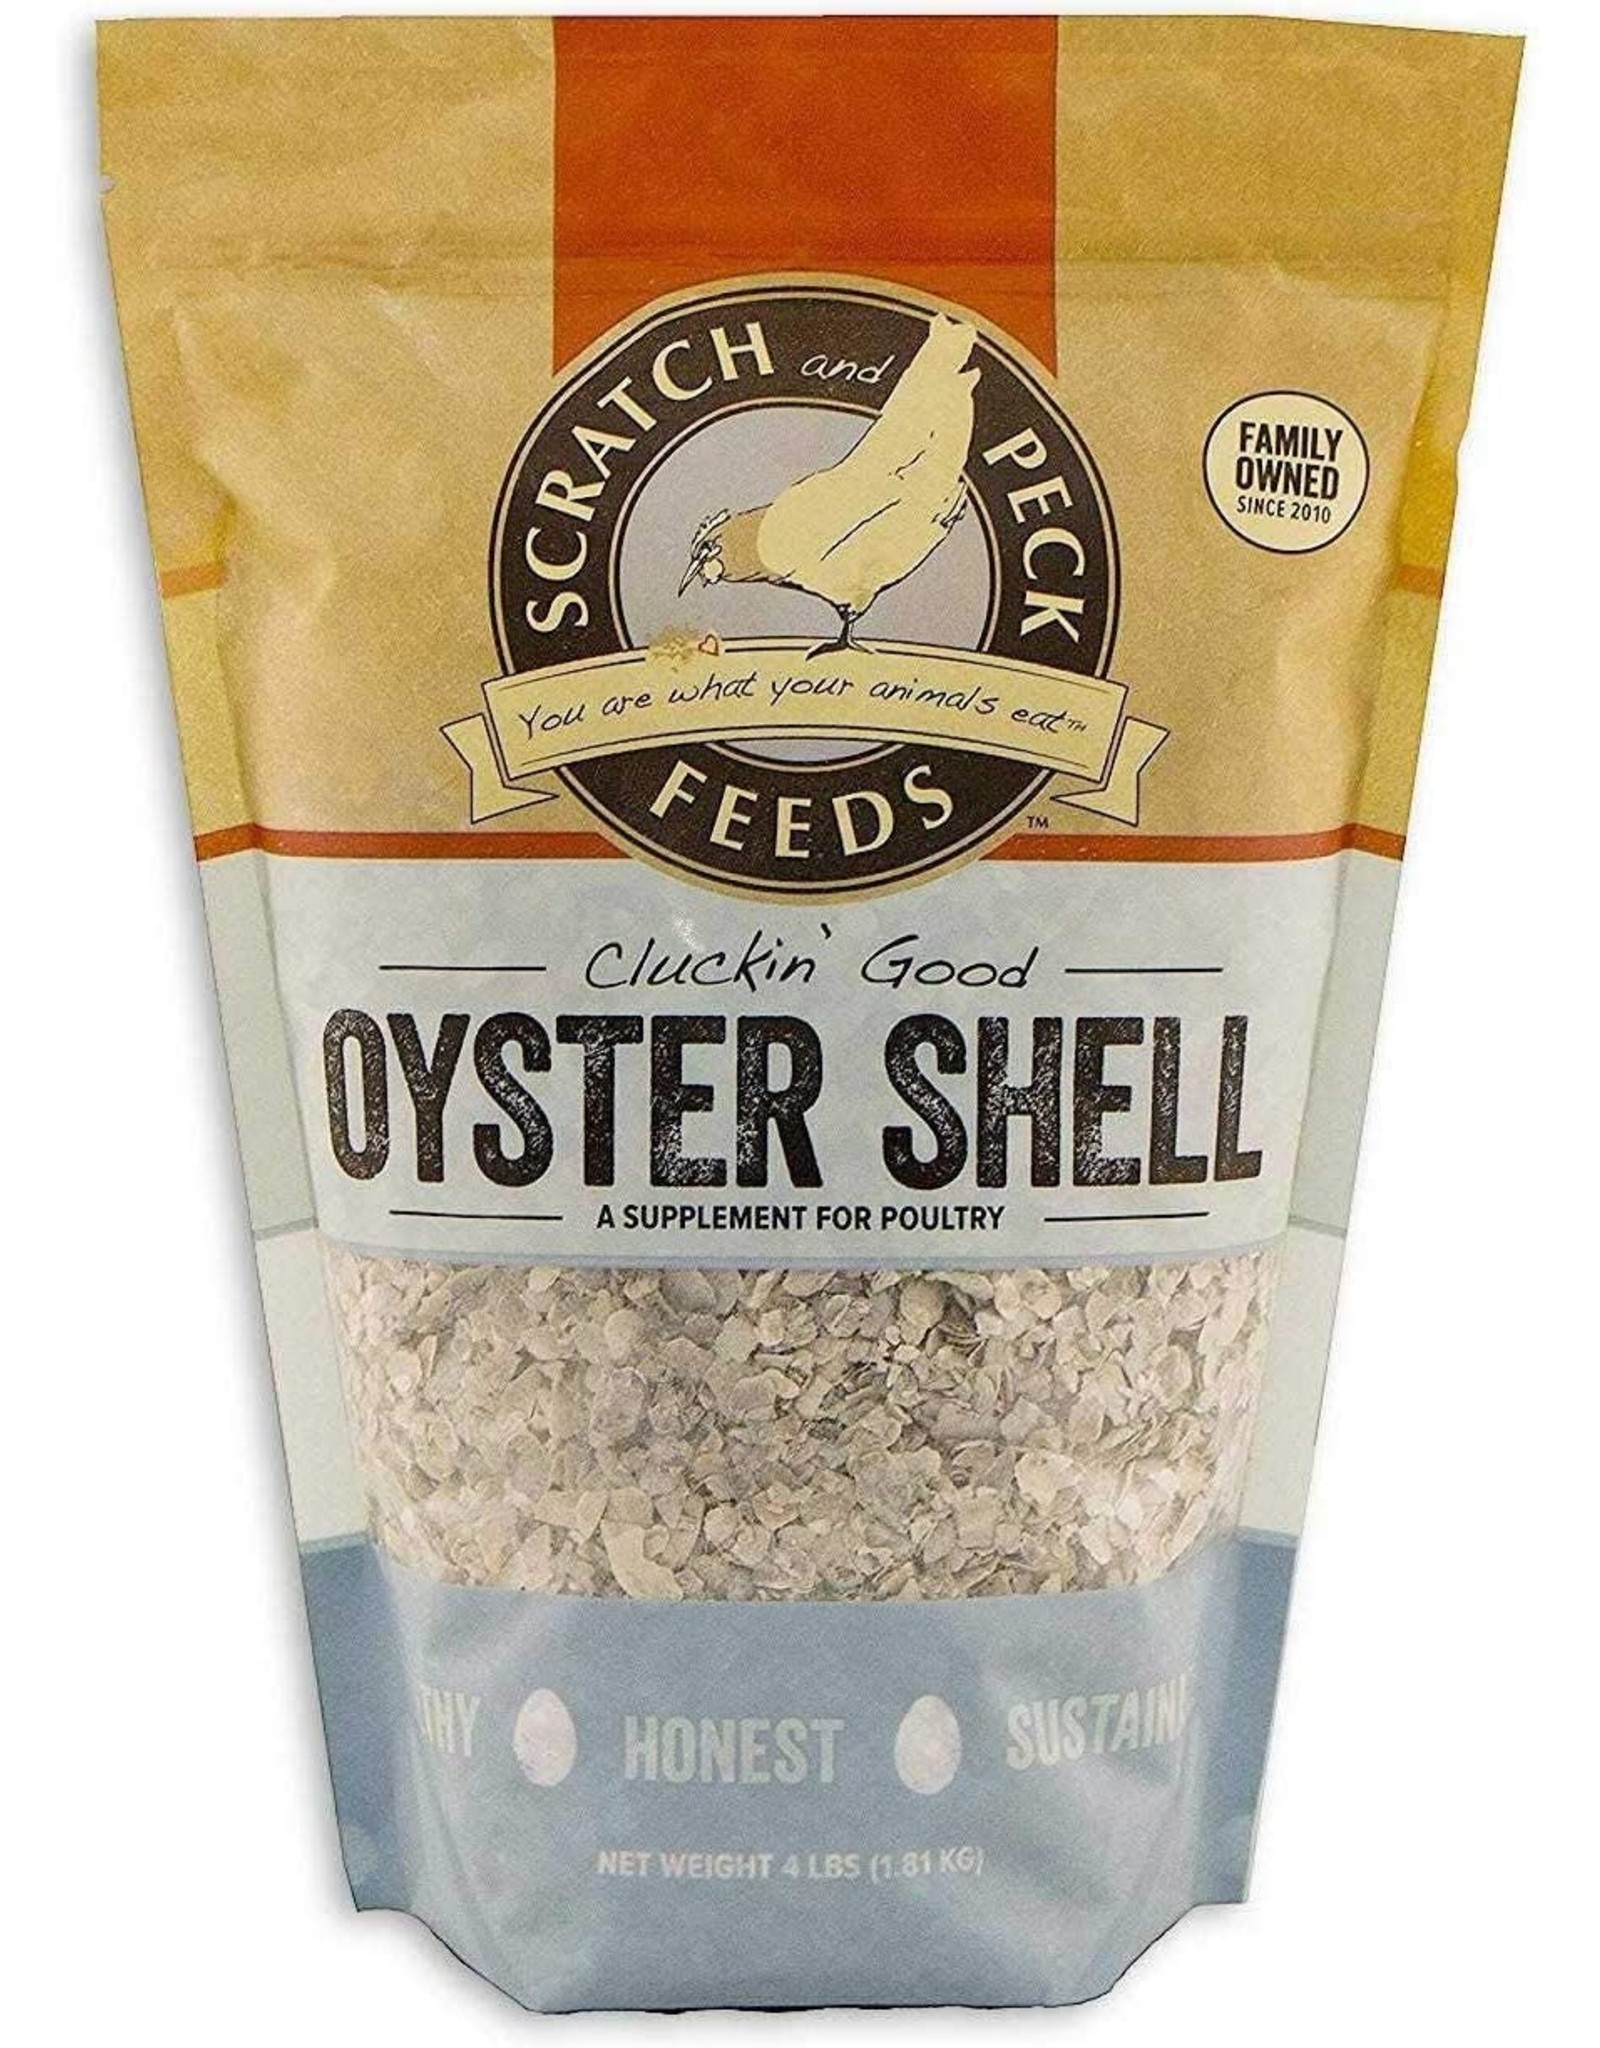 Scratch & Peck Feeds SCRATCH & PECK CLUCKIN' GOOD OYSTER SHELL SUPPLEMENT 4LB